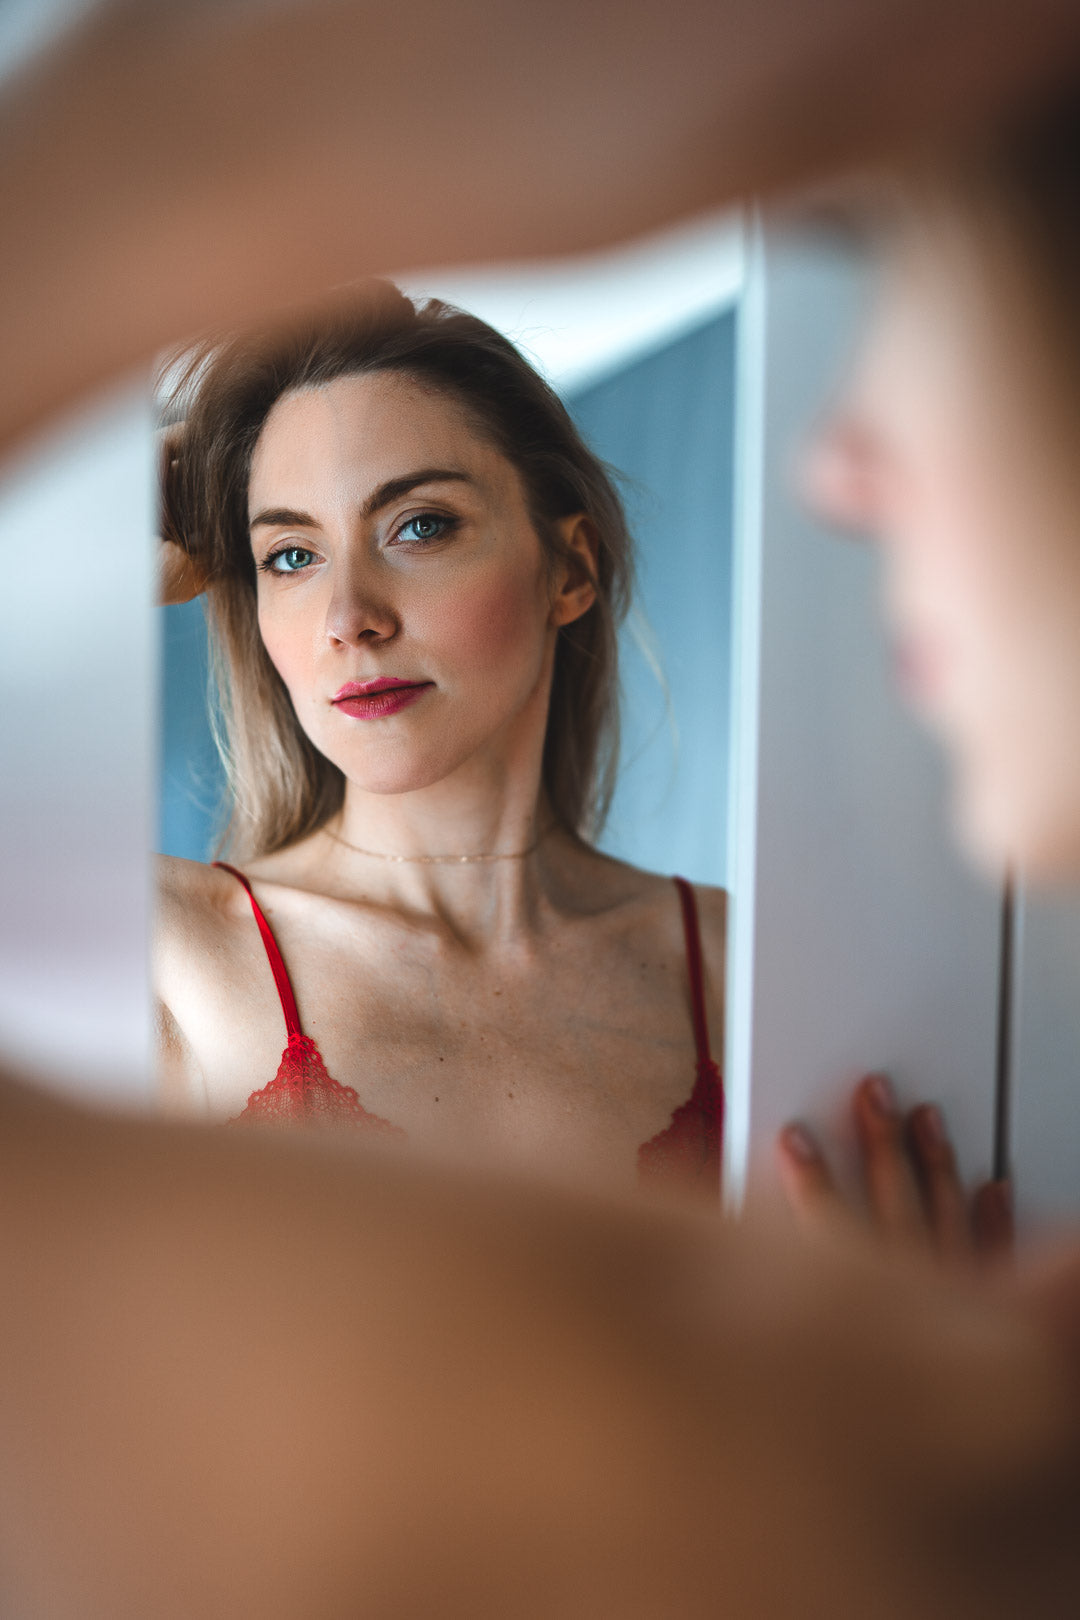 portrait of a woman looking at herself in the mirror